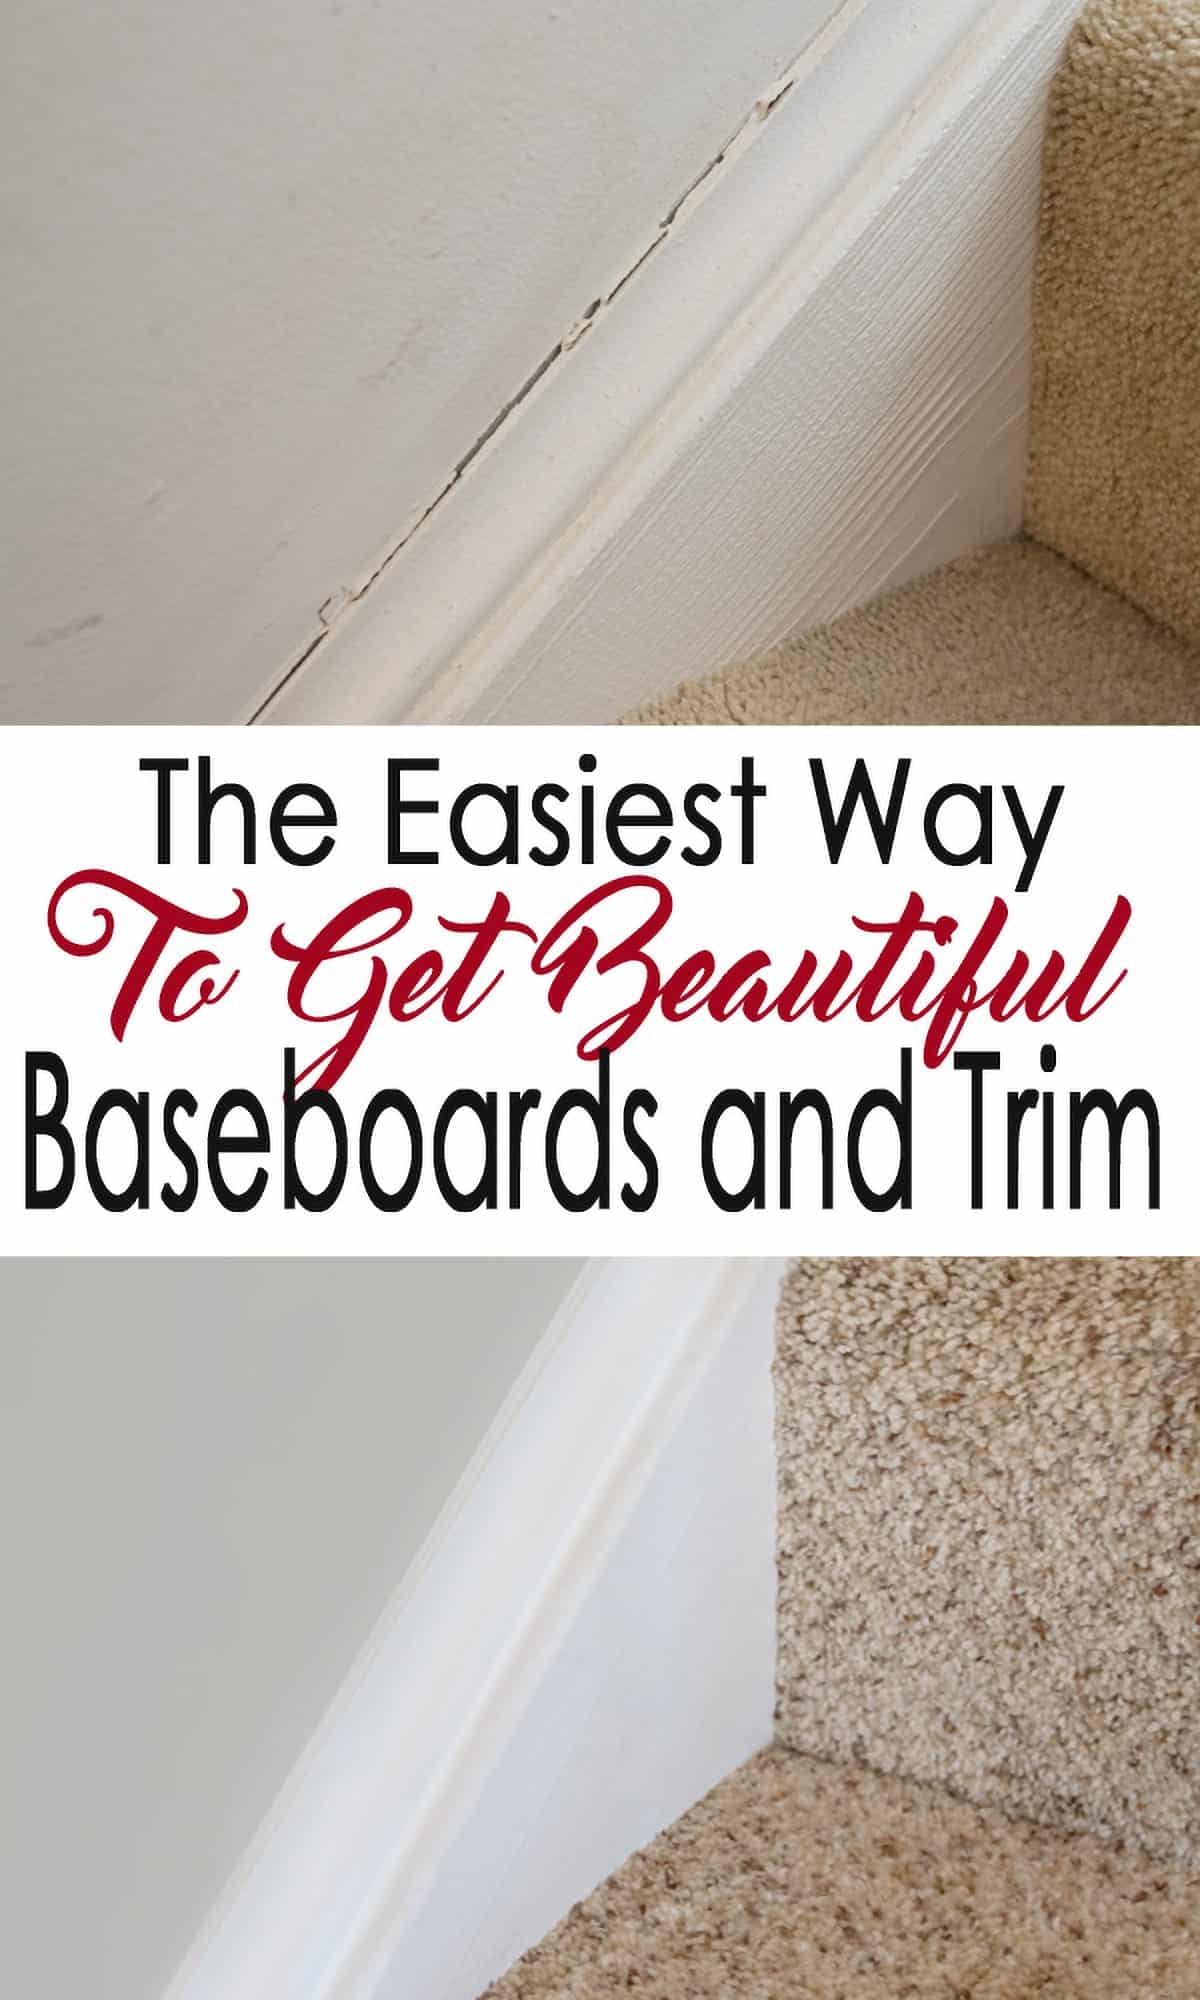 Repairing and Caulking Baseboards like a Pro